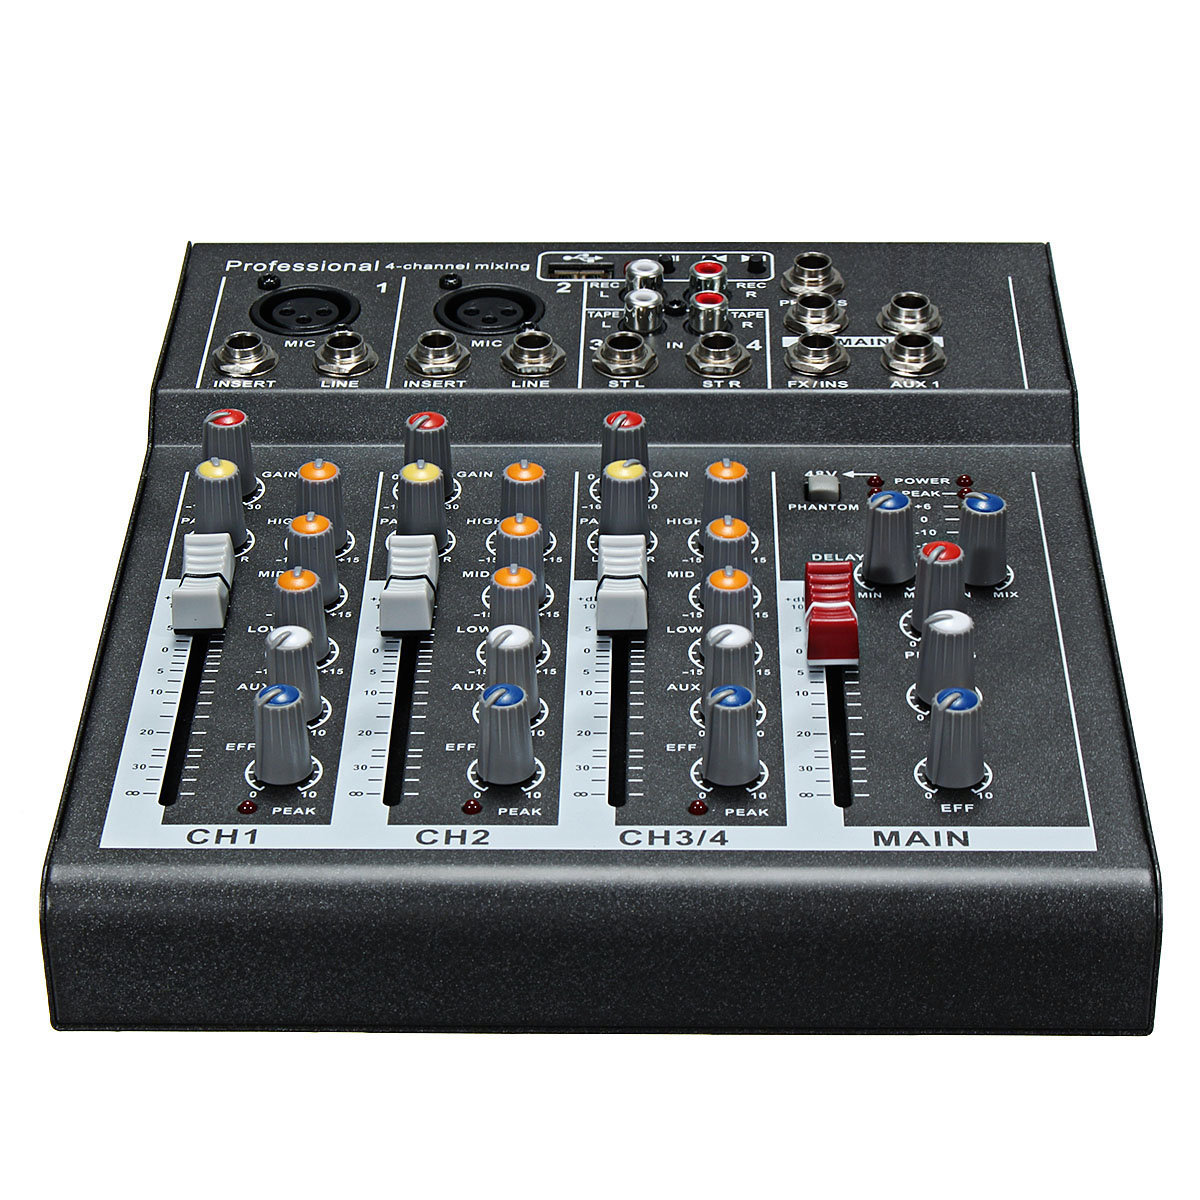 LEORY Karaoke Mixer Professional 4 Channel Studio Audio Mixing Console Amplifier Digital Mini Microphone Sound Mixer Sound Card audio mixer cms1600 3 cms compact mixing system professional live mixer with concert sound performance digital 24 48 bit effects